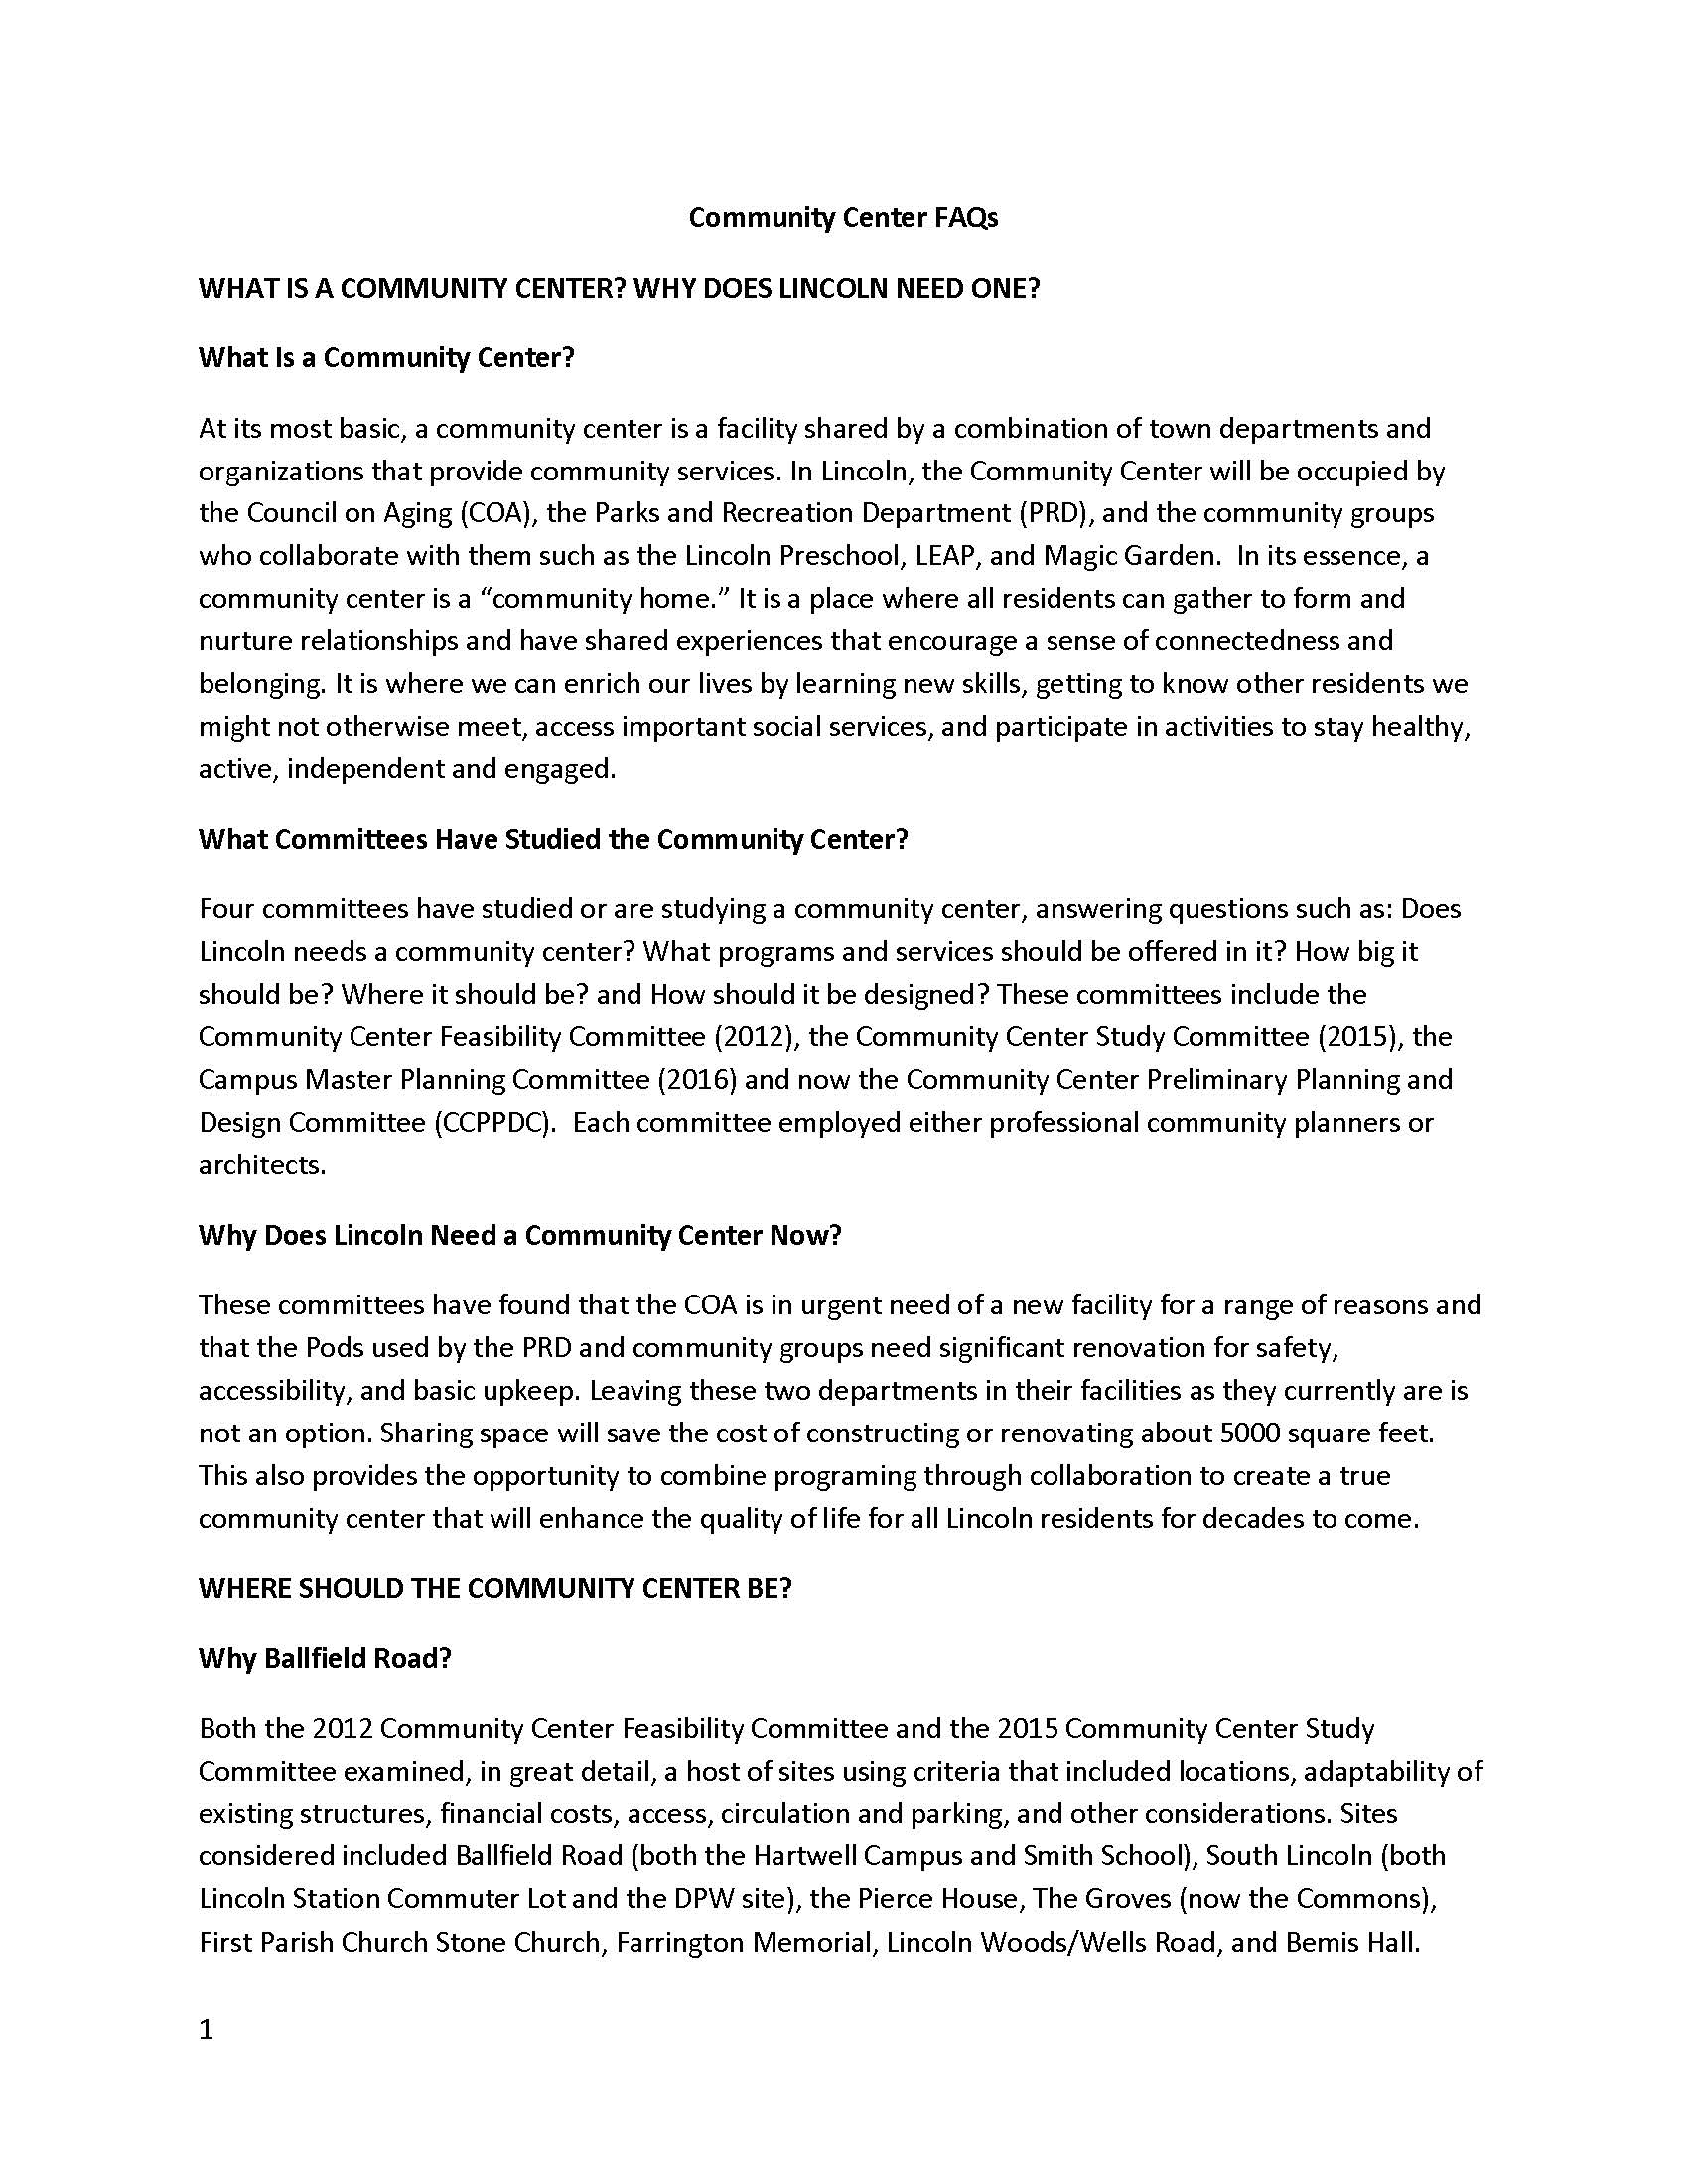 Community Center FAQs_Page_1